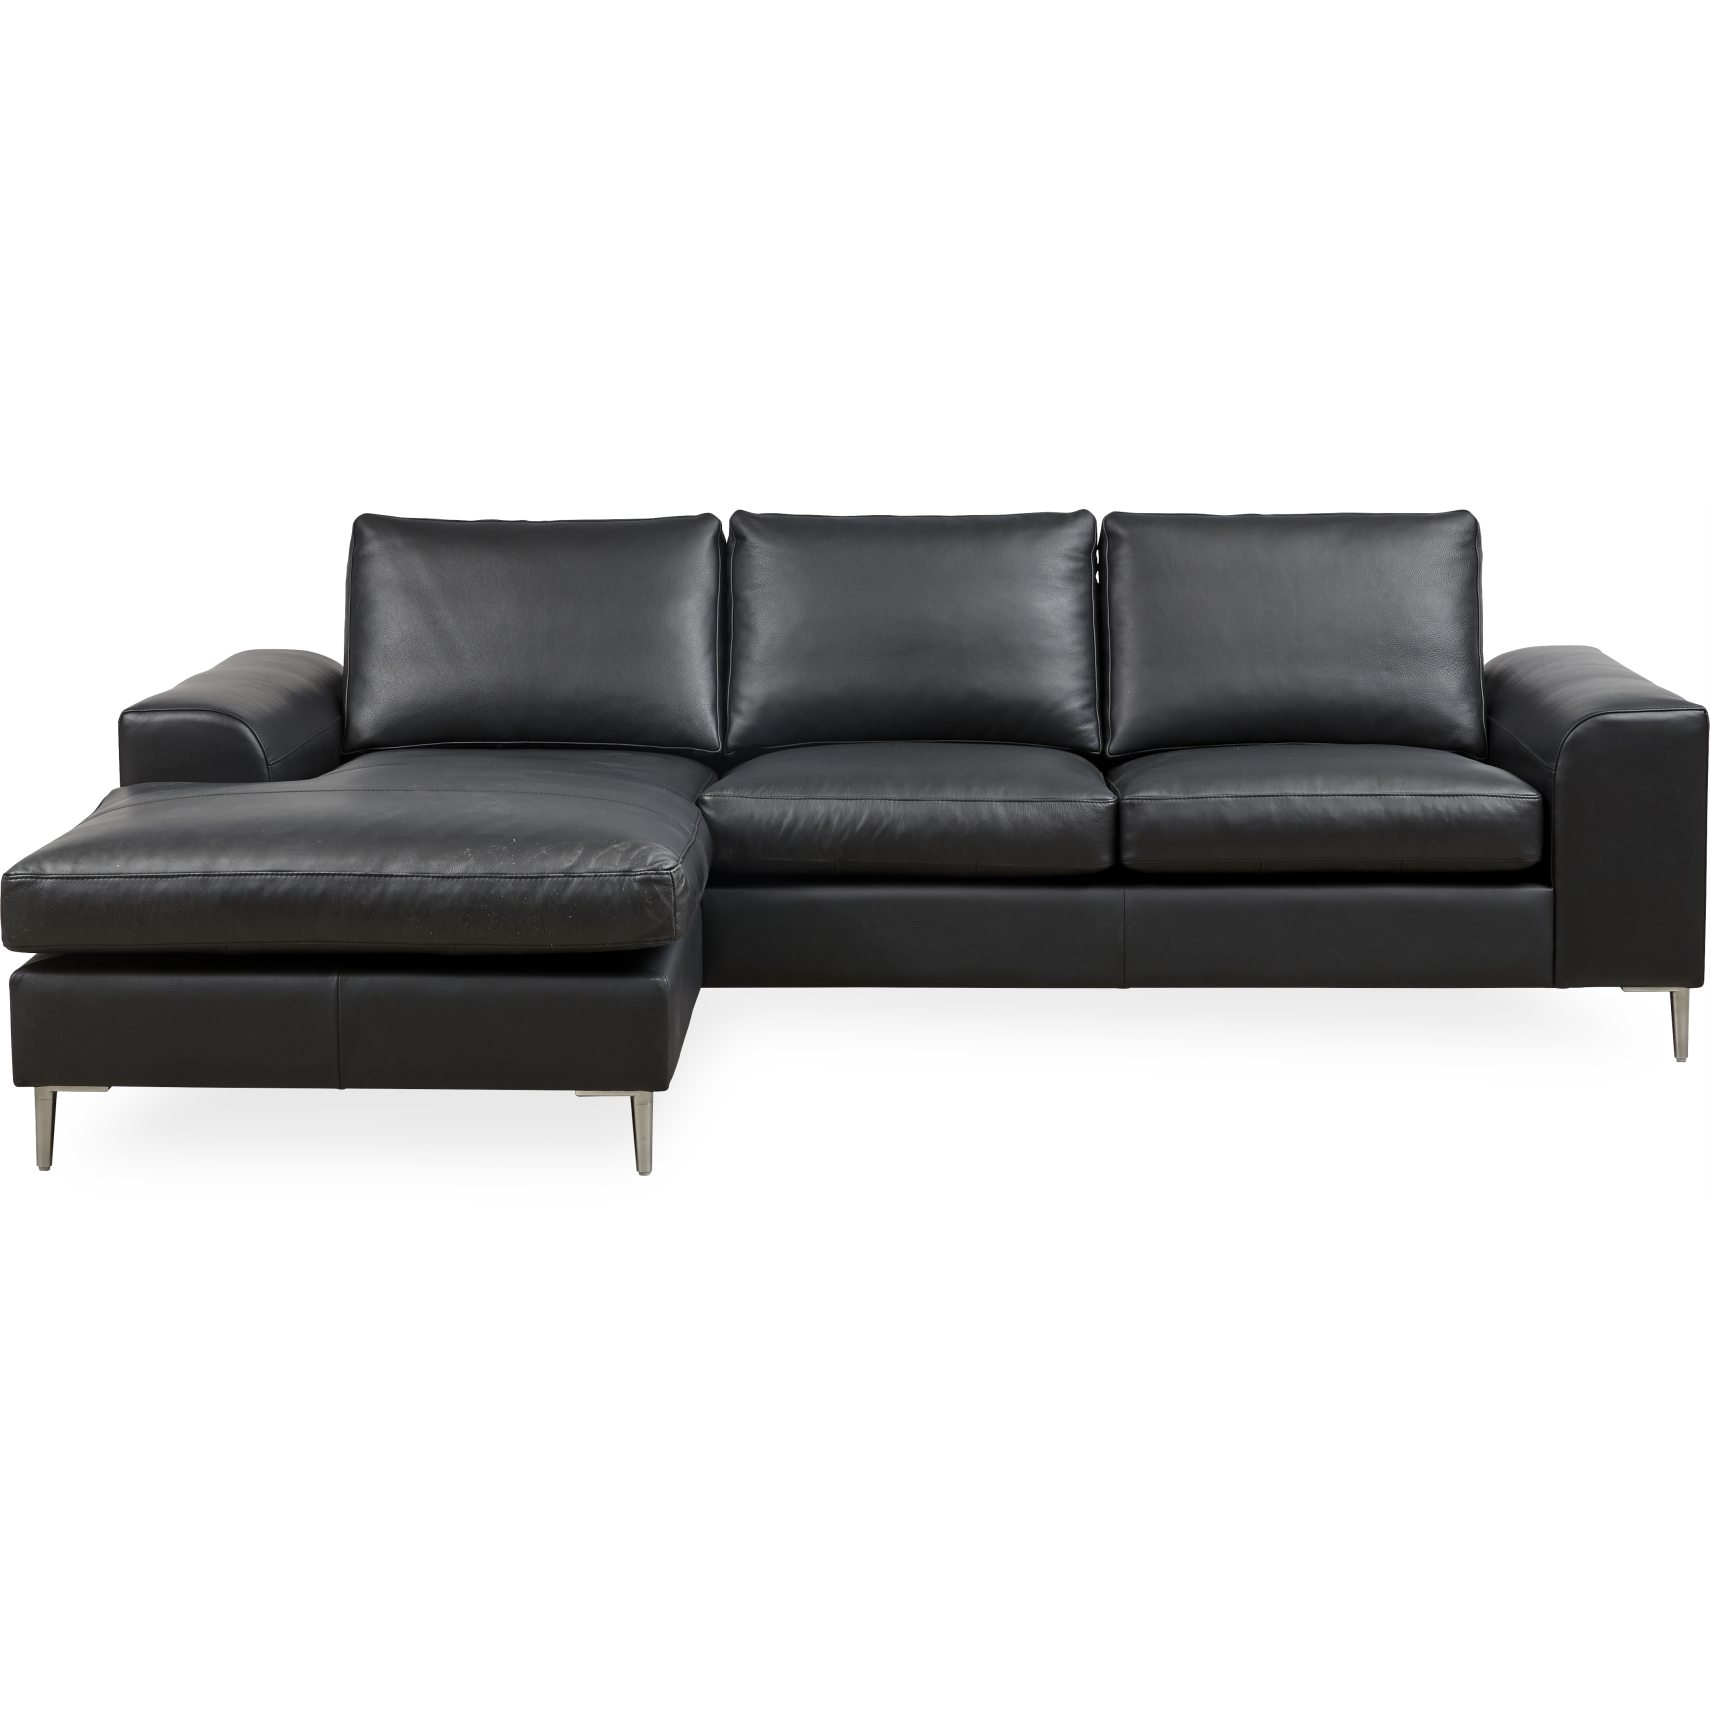 FLEX 162 Sofa med chaiselong - Sofa med chaiselong